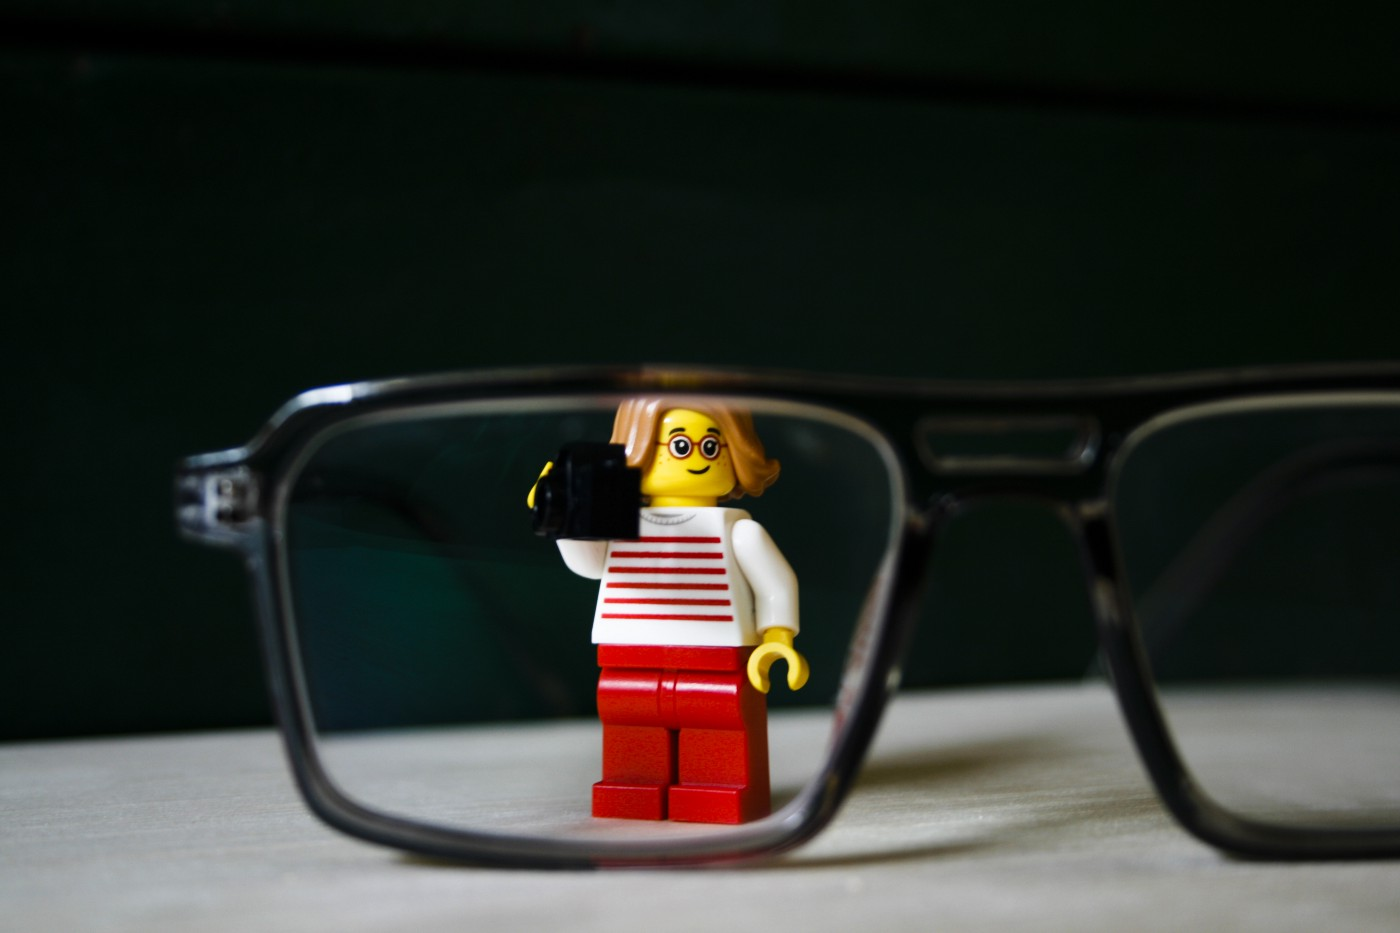 Figurine standing behind glasses